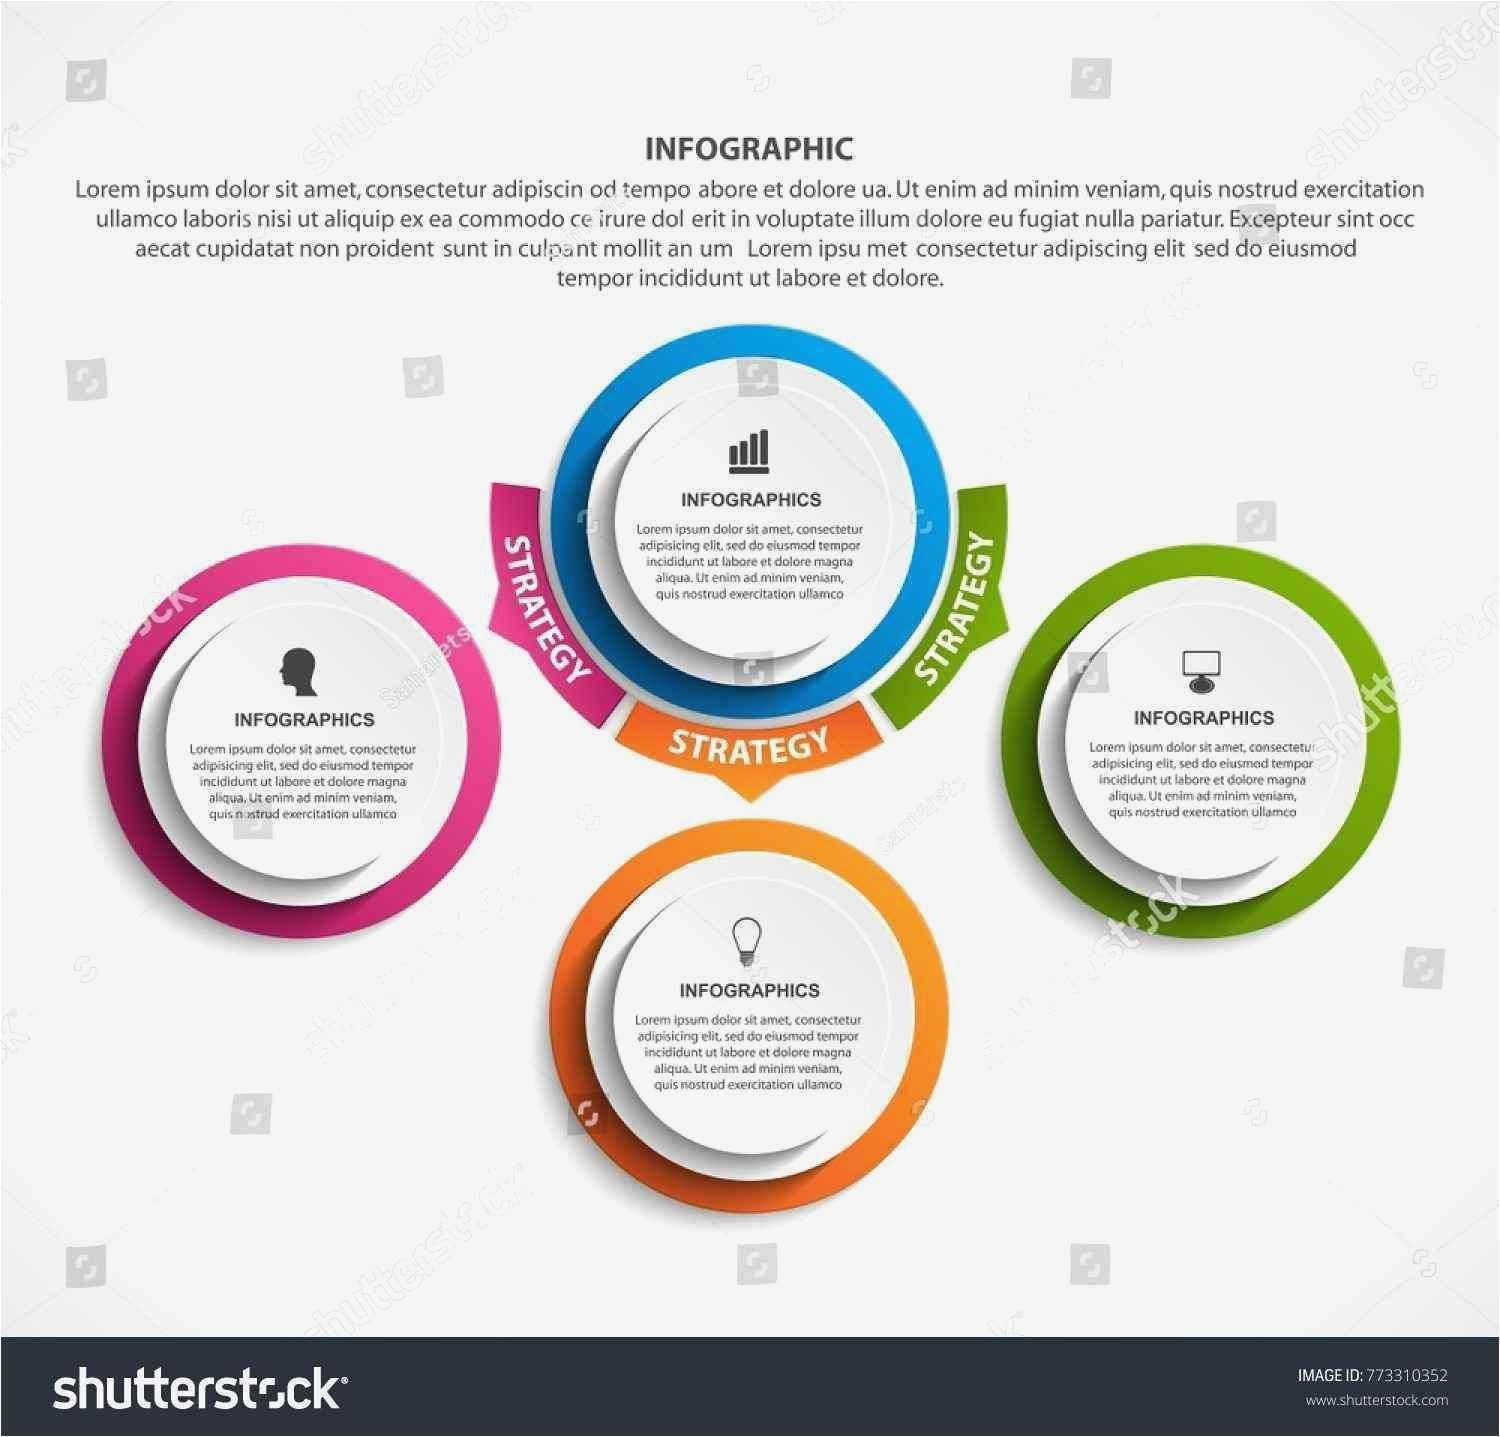 Business Case Powerpoint Template New Research Presentation Intended For Business Case Presentation Template Ppt